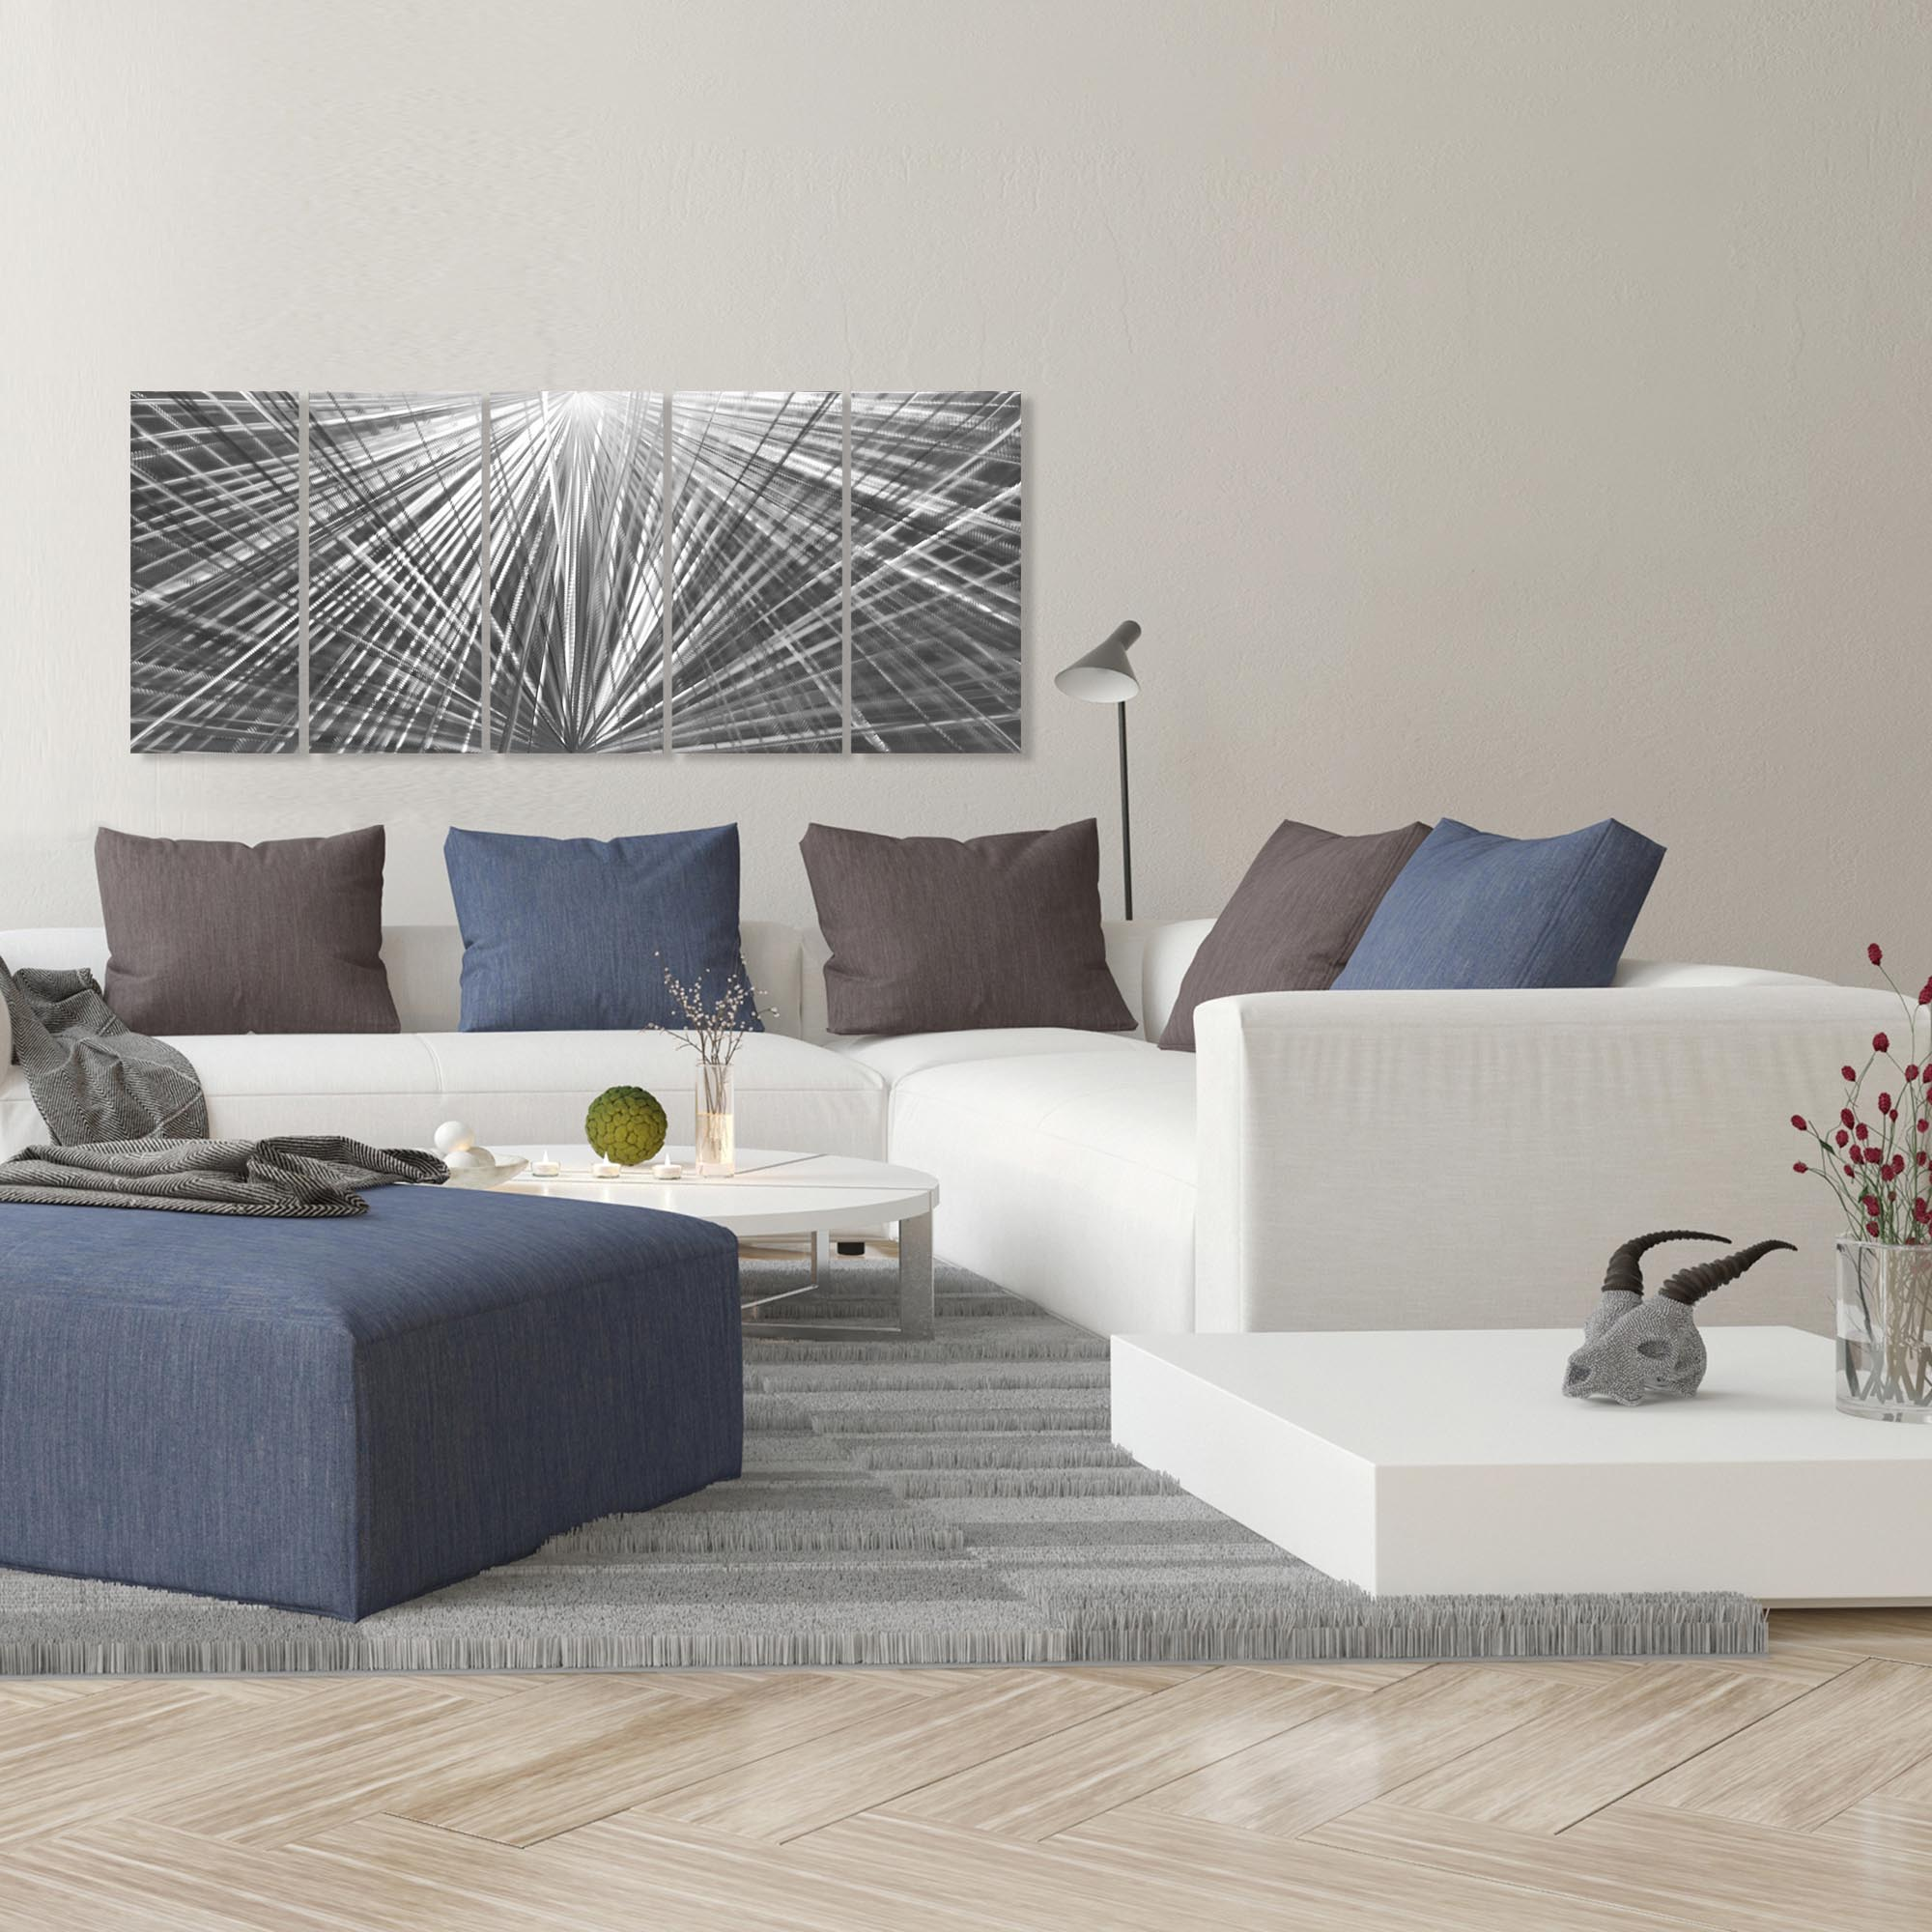 In Harmony 62x24in. Natural Aluminum Abstract Decor - Lifestyle View